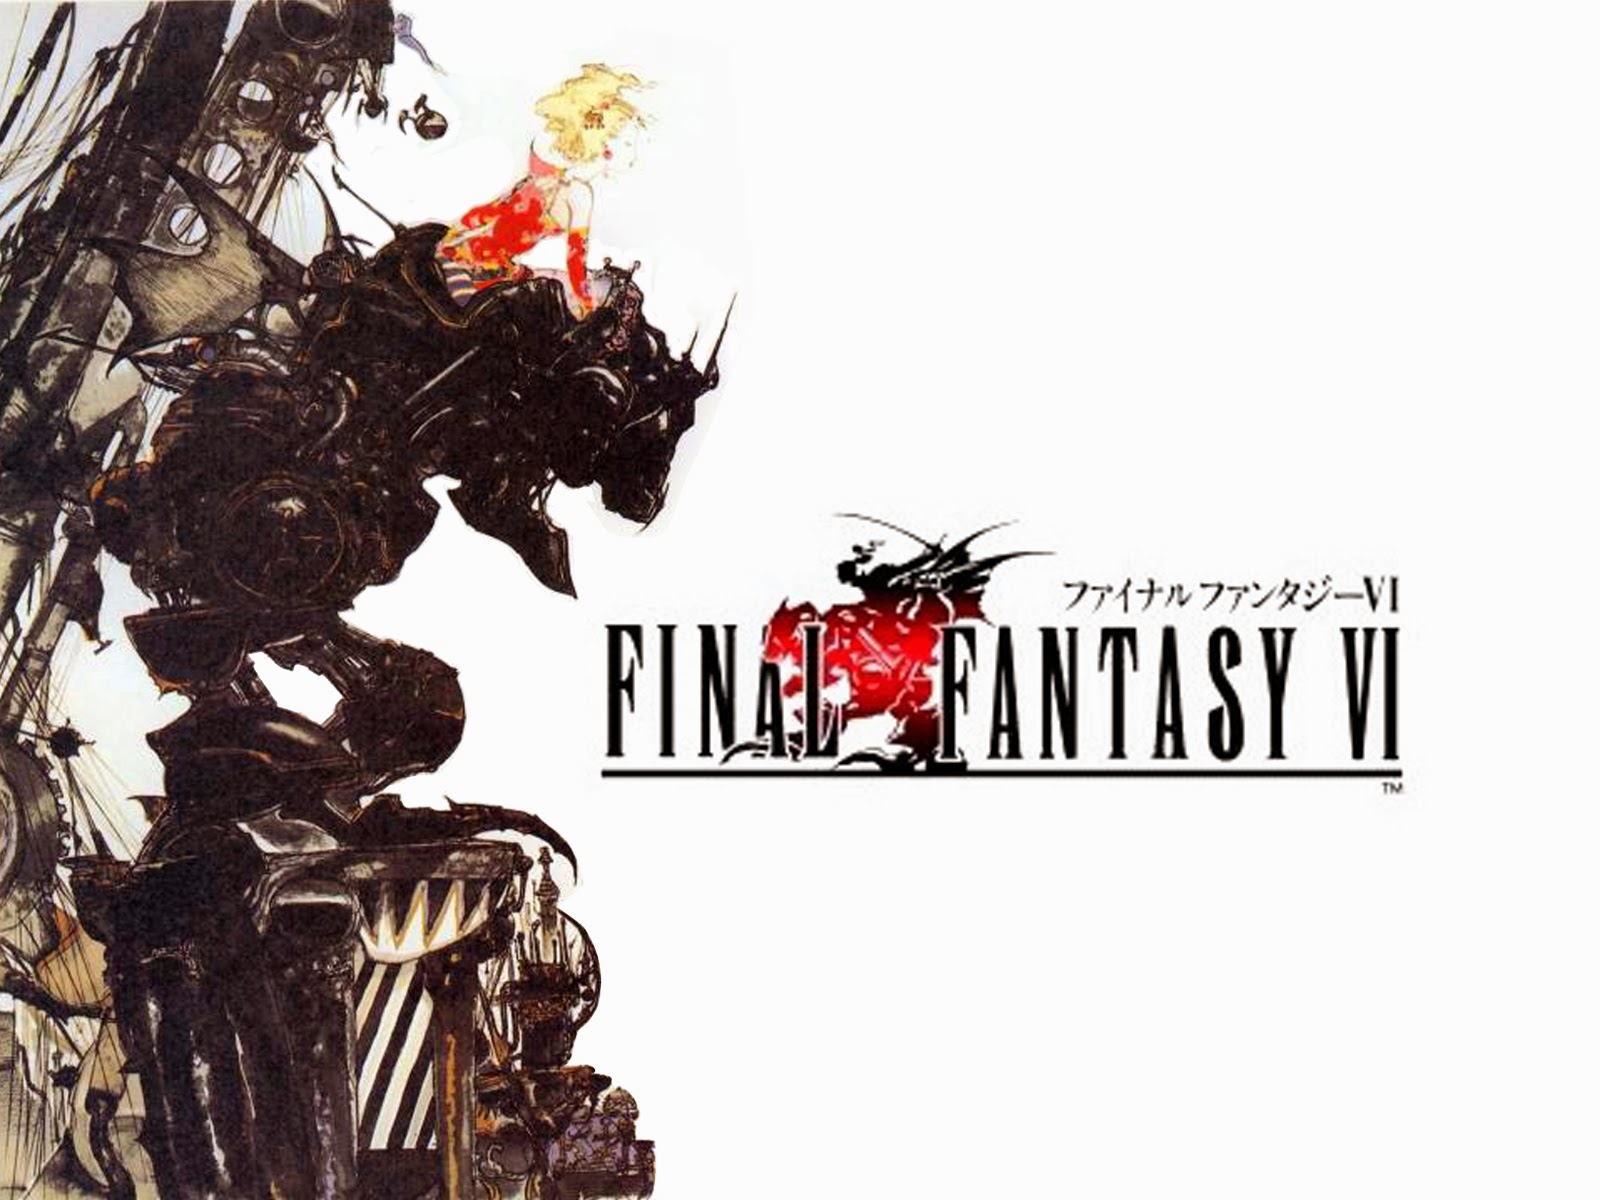 Now Available for Android The First Installment of Final Fantasy